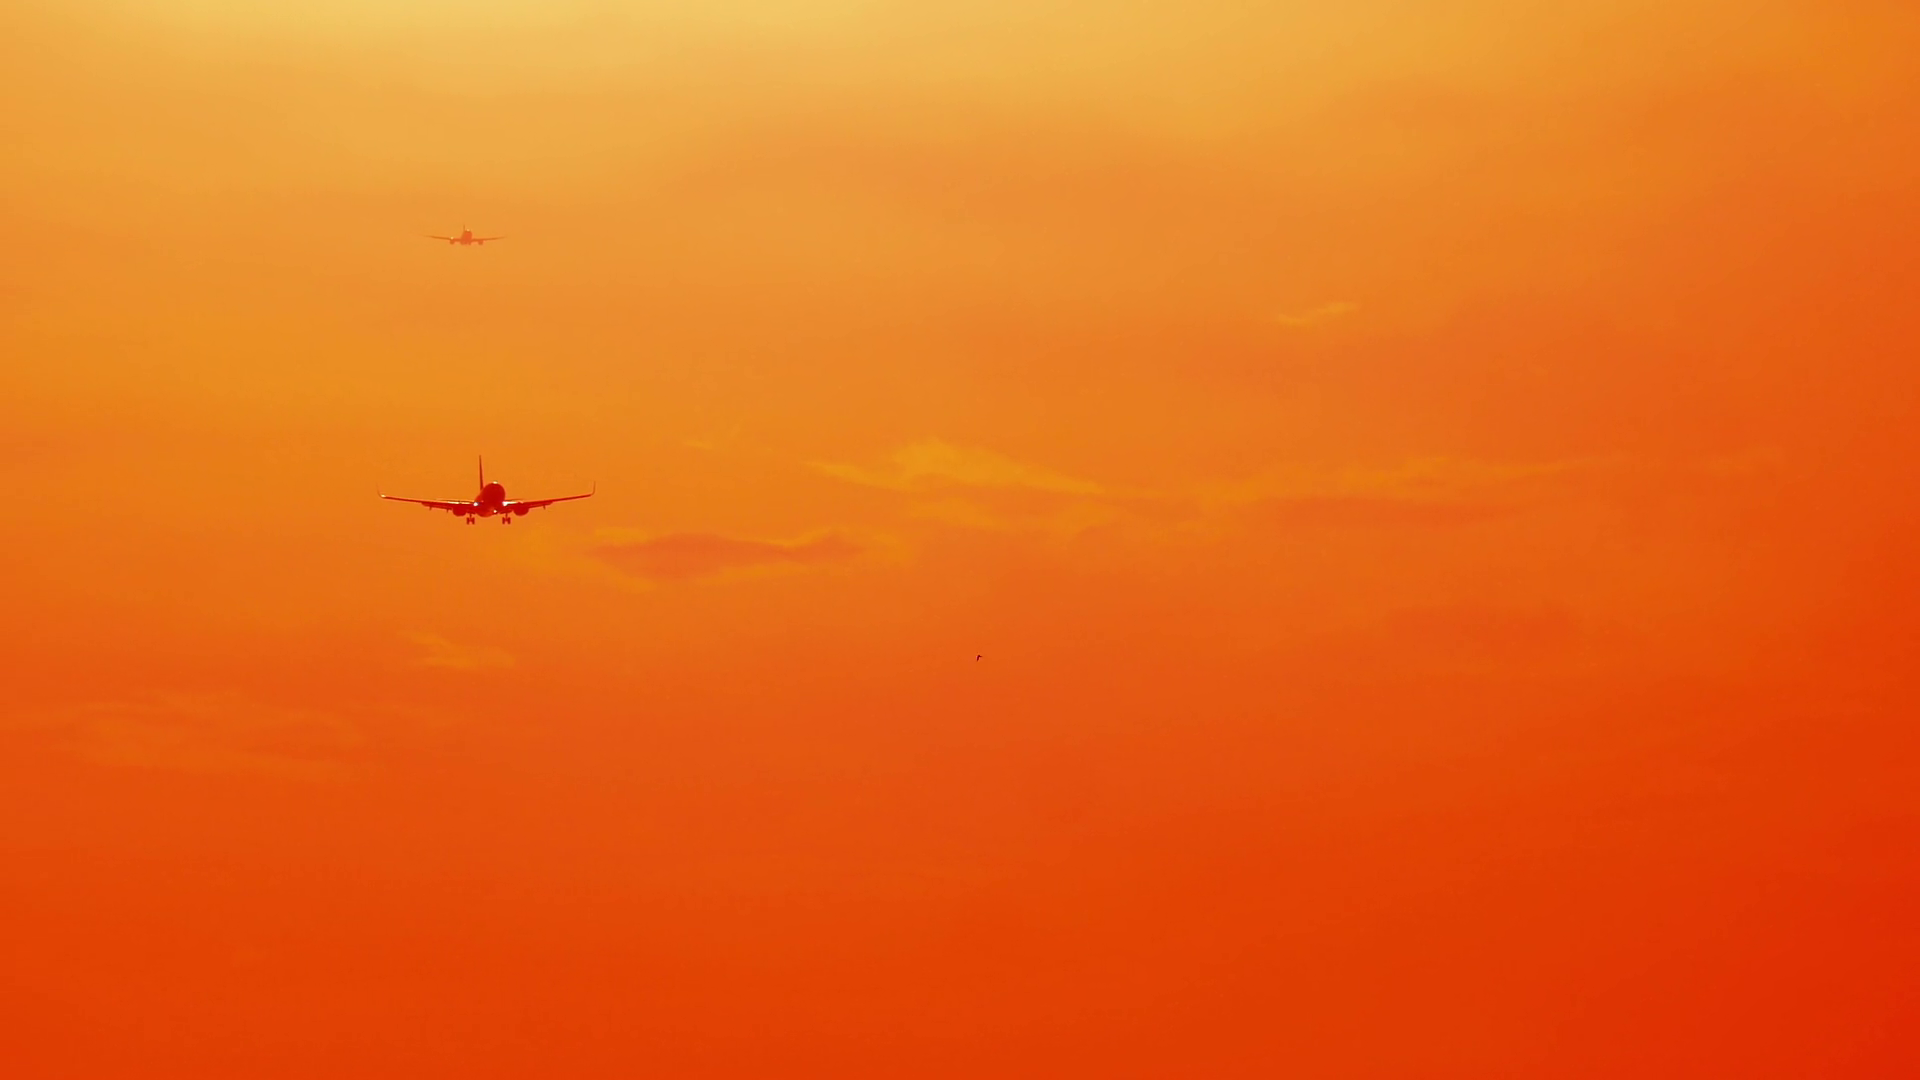 videoblocks-bright-sunny-orange-sunset-sky-with-flying-airplanes-travel-background_bngn5m0uhf_thumbnail-full03.png